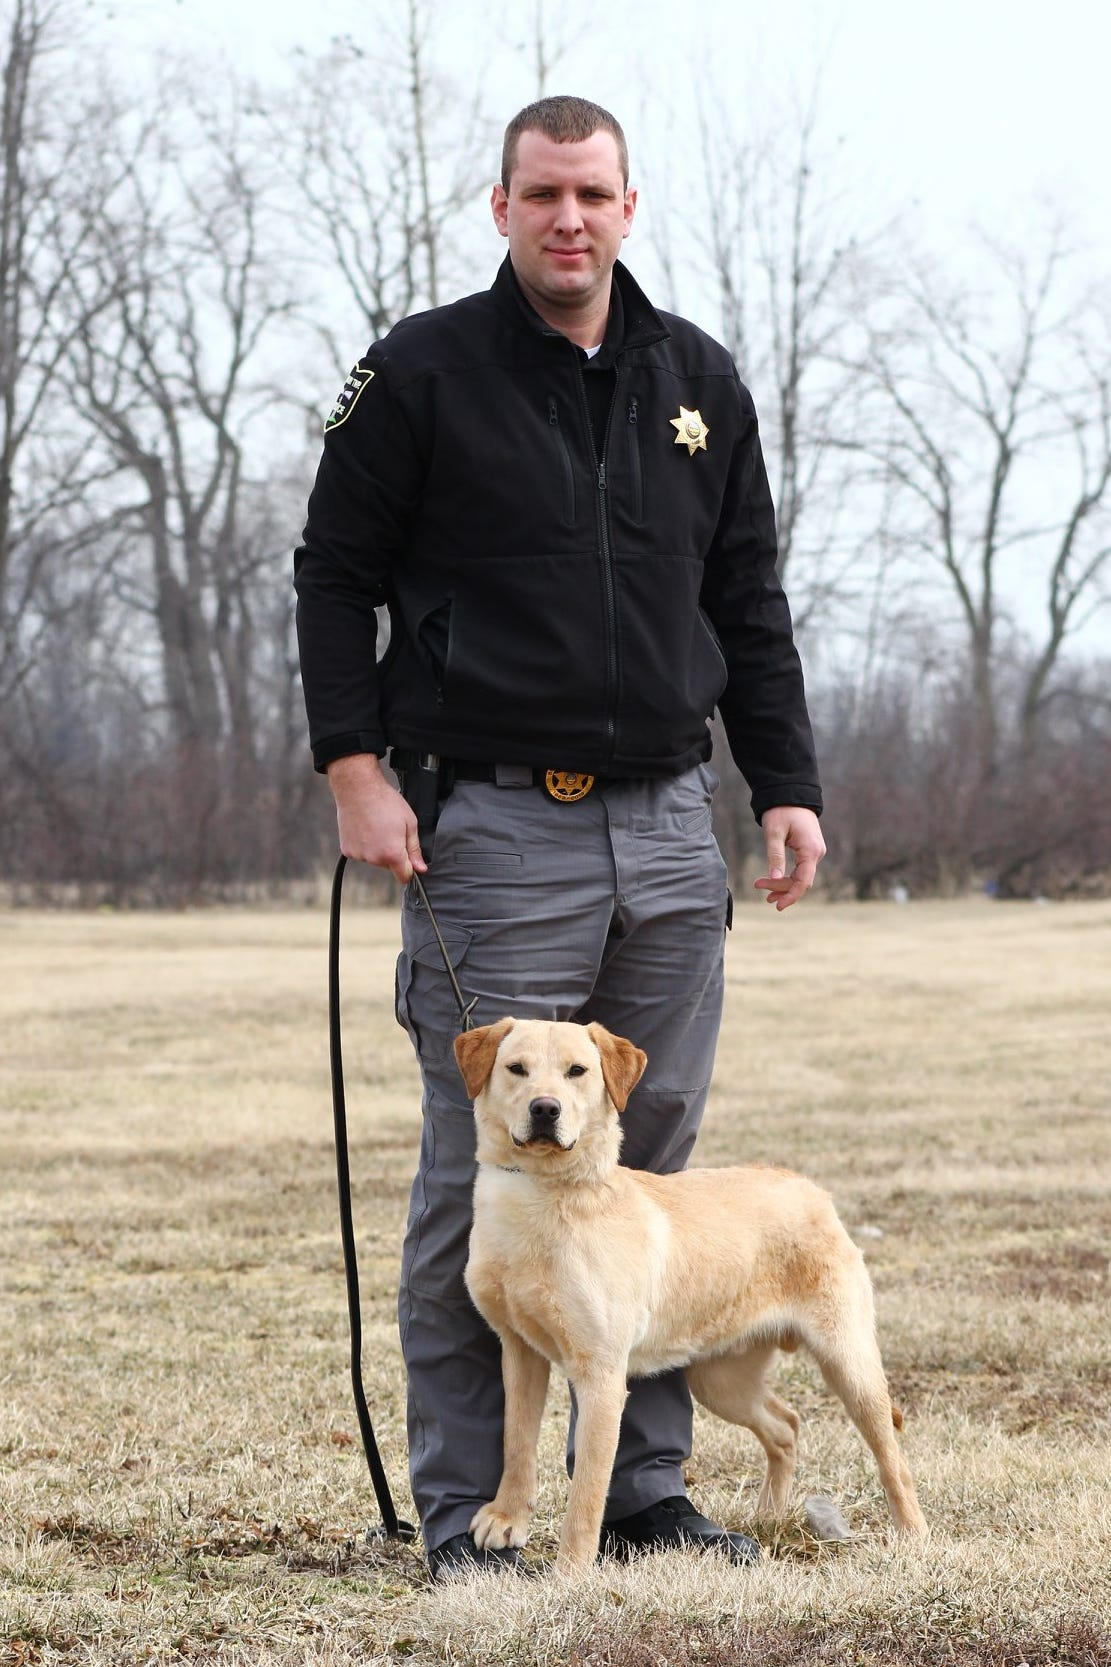 Danbury Township Police Officer Brian Sloan and his new K-9 partner Kalahan, a 1-year-old Labrador Retriever, are working together to keep drugs out of the community.